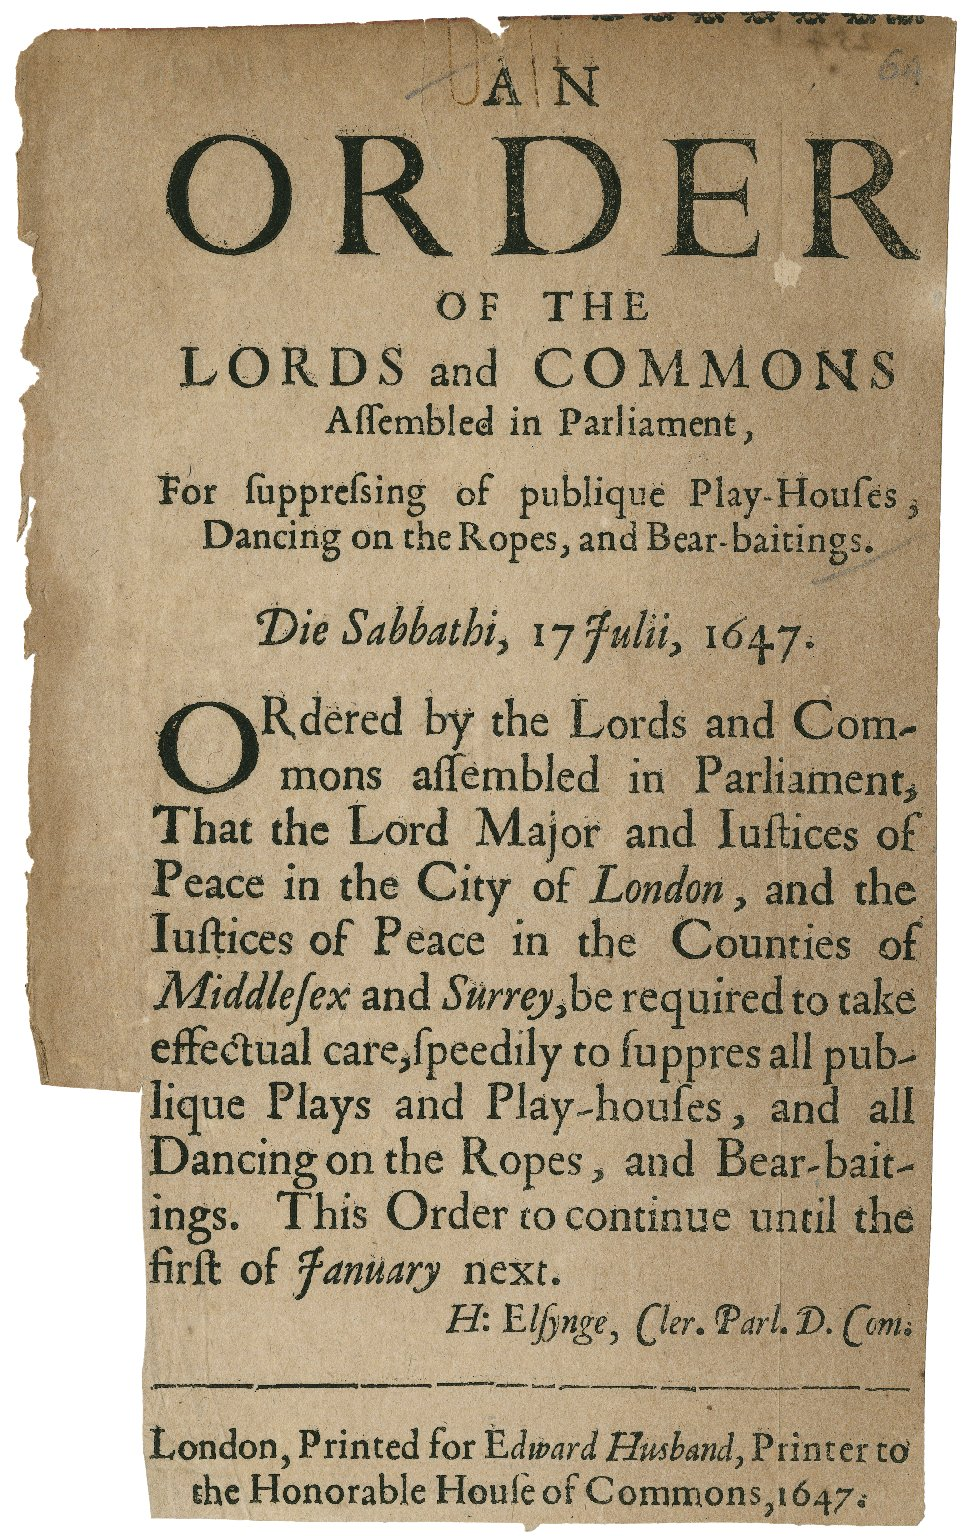 [Proceedings. 1647-07-17] An order of the Lords and Commons assembled in Parliament, for suppressing of publique play-houses, dancing on the ropes, and bear-baitings. Die Sabbathi, 17 Julii, 1647. Ordered by the Lords and Commons assembled in Parliament, that the Lord Major and Iustices of Peace in the city of London, and the Iustices of Peace in the counties of Middlesex and Surrey, be required to take effectual care, speedily to suppres all publique plays and play-houses, and all dancing on the ropes, and bear-baitings. This order to continue until the first of January next. H: Elsynge, Cler. Parl. D. Com.